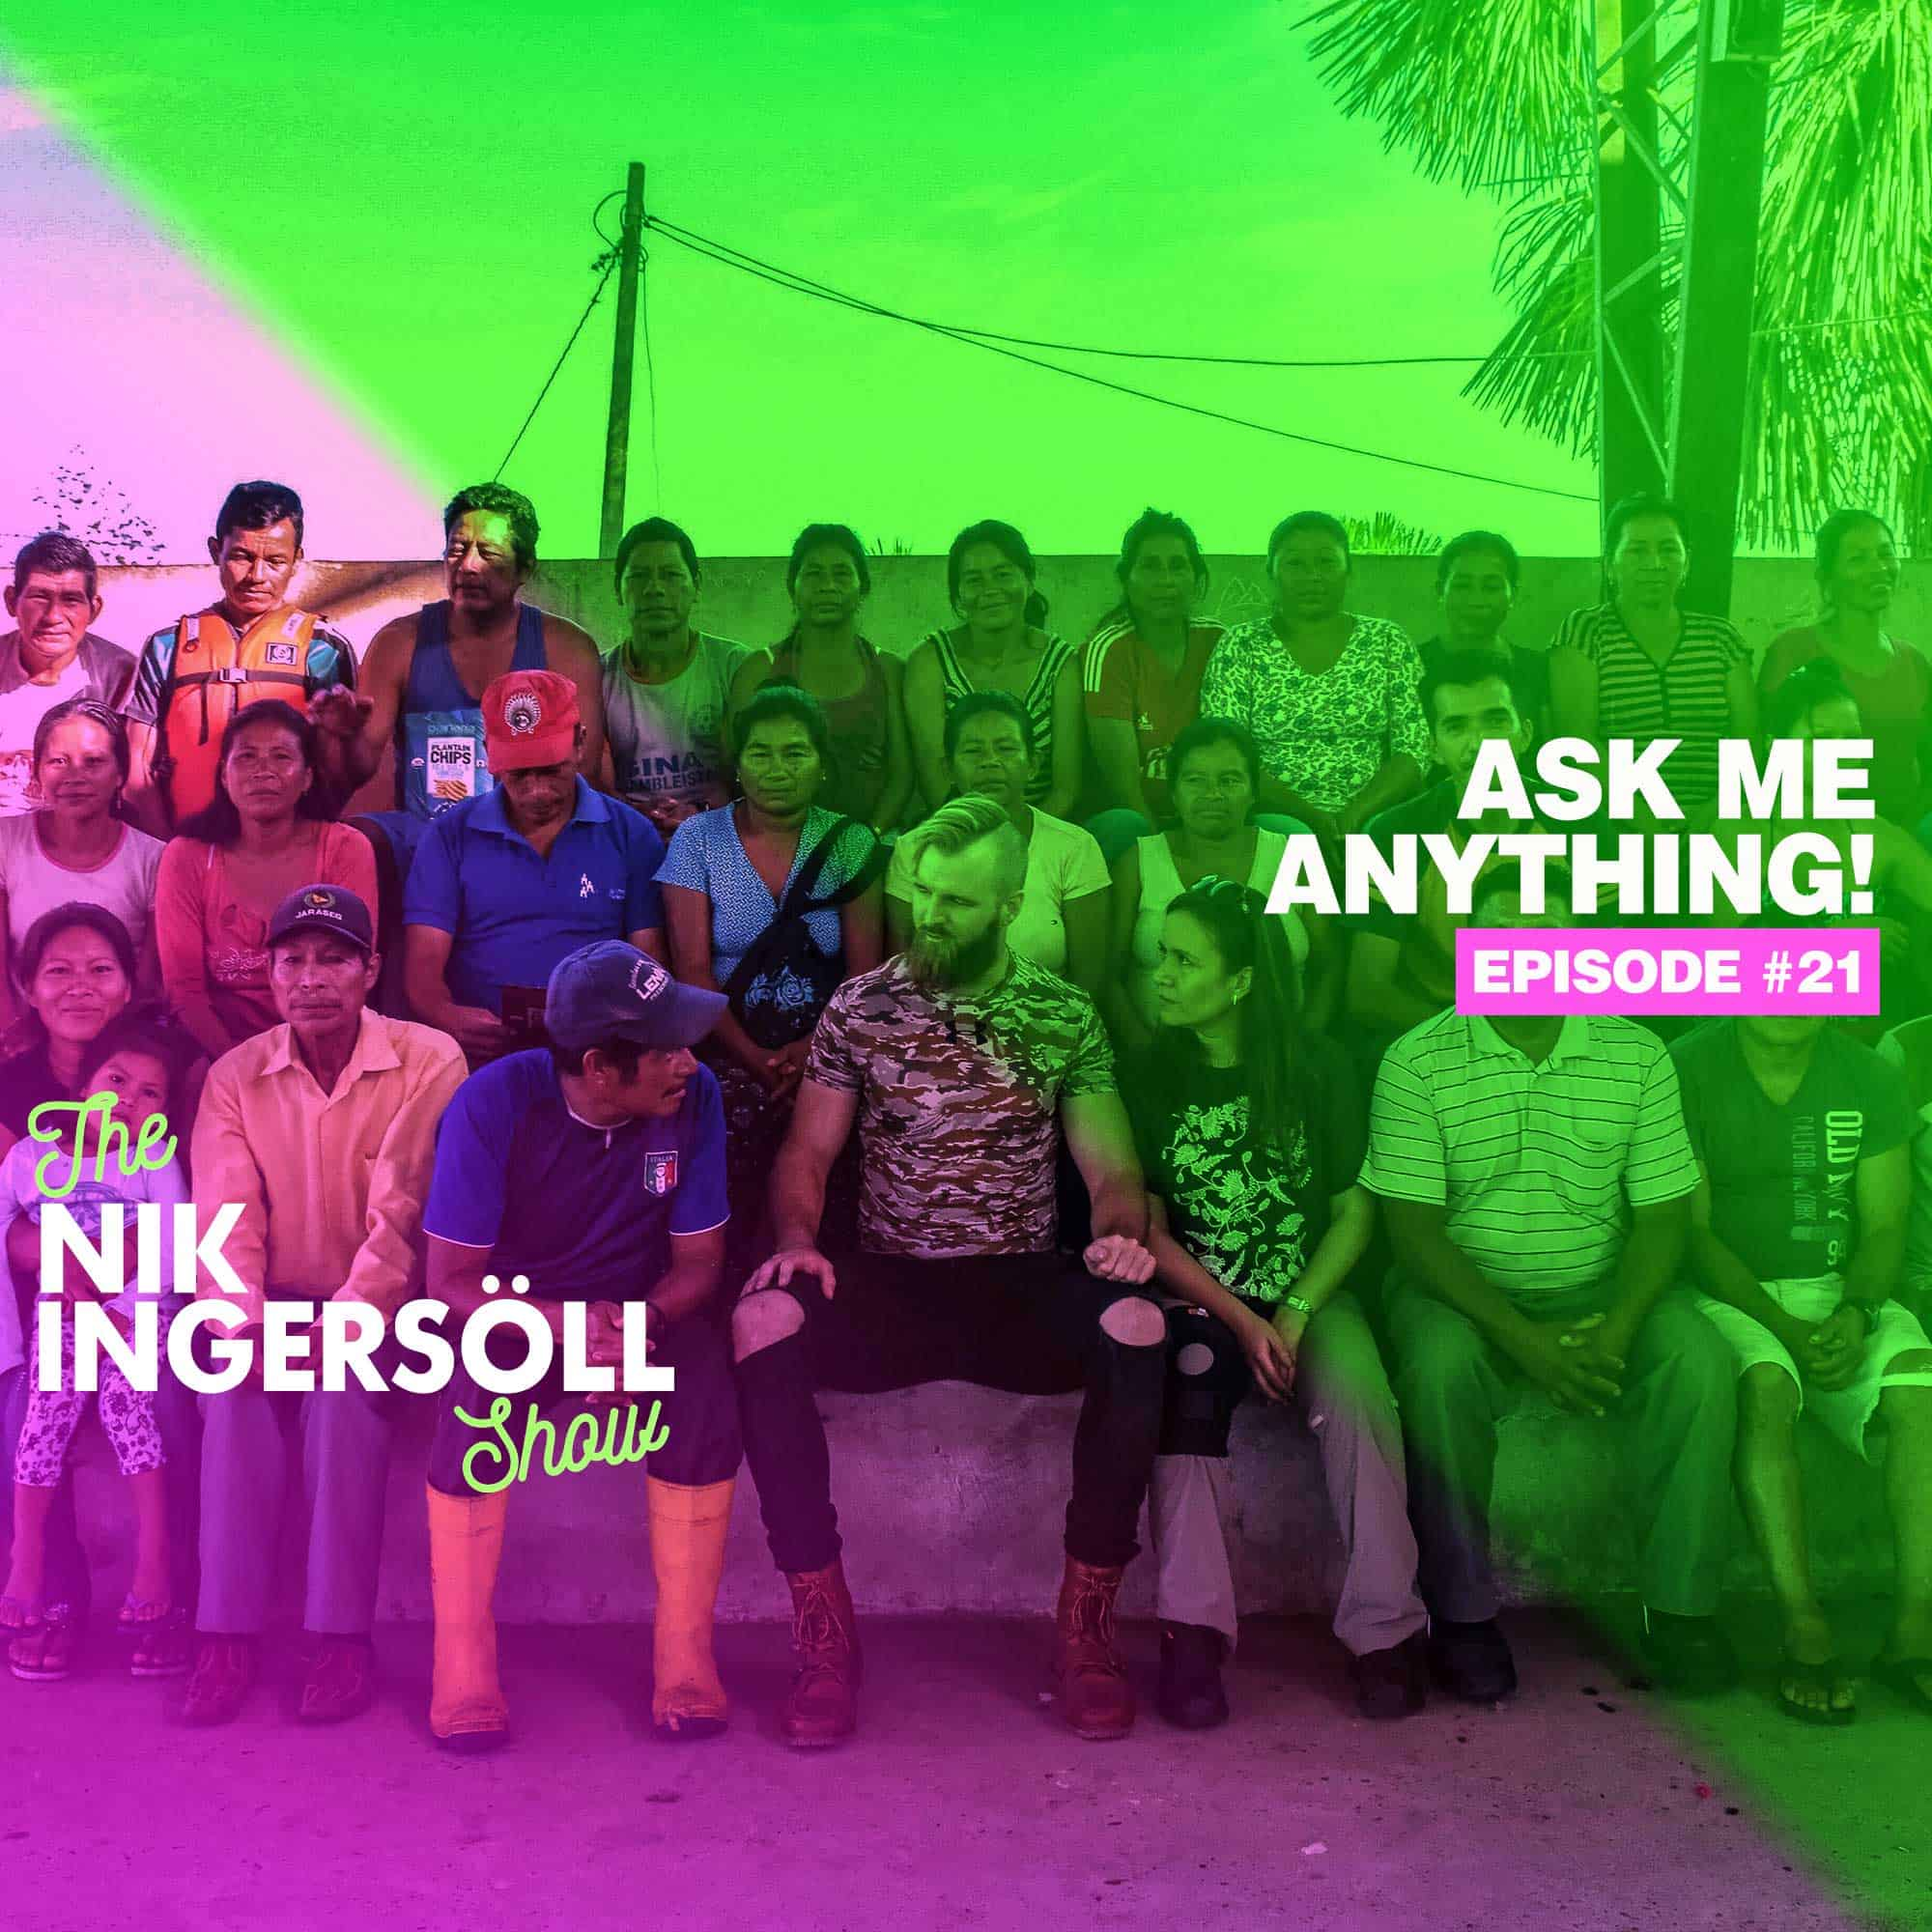 #21: Ask Me Anything! – Part 5 – (Podcast) The Nik Ingersoll Show